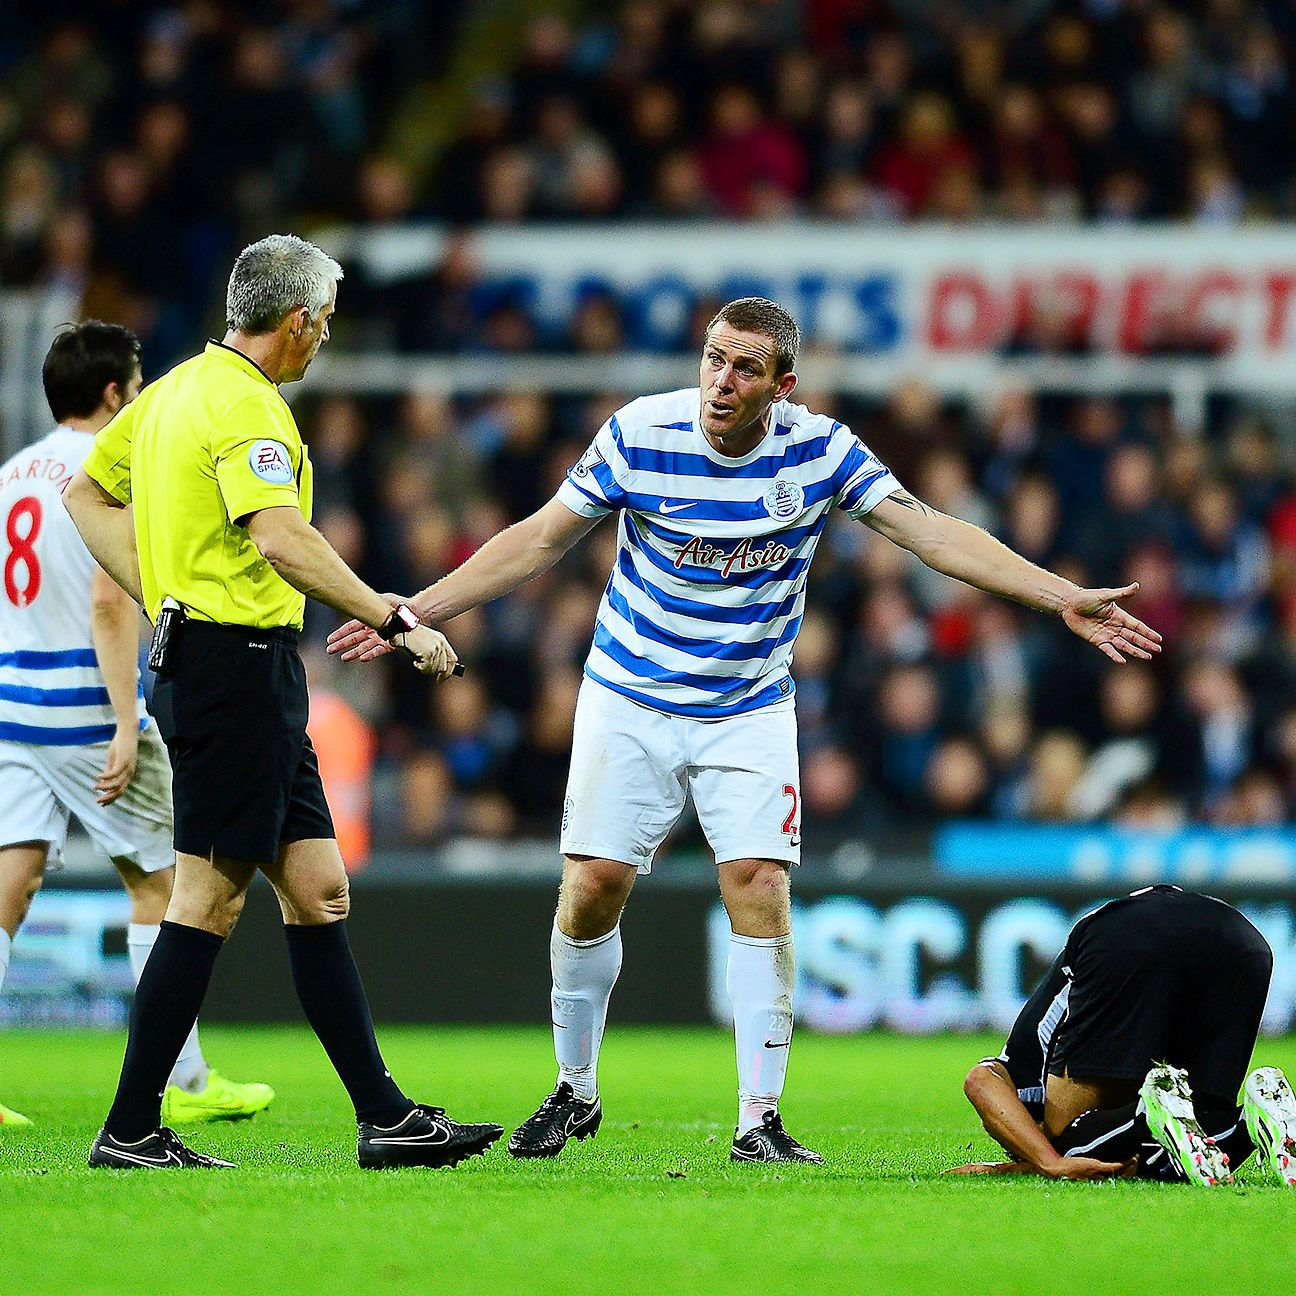 QPR offered little in attack versus Newcastle and mainly relied on the defensive efforts of Richard Dunne and company.